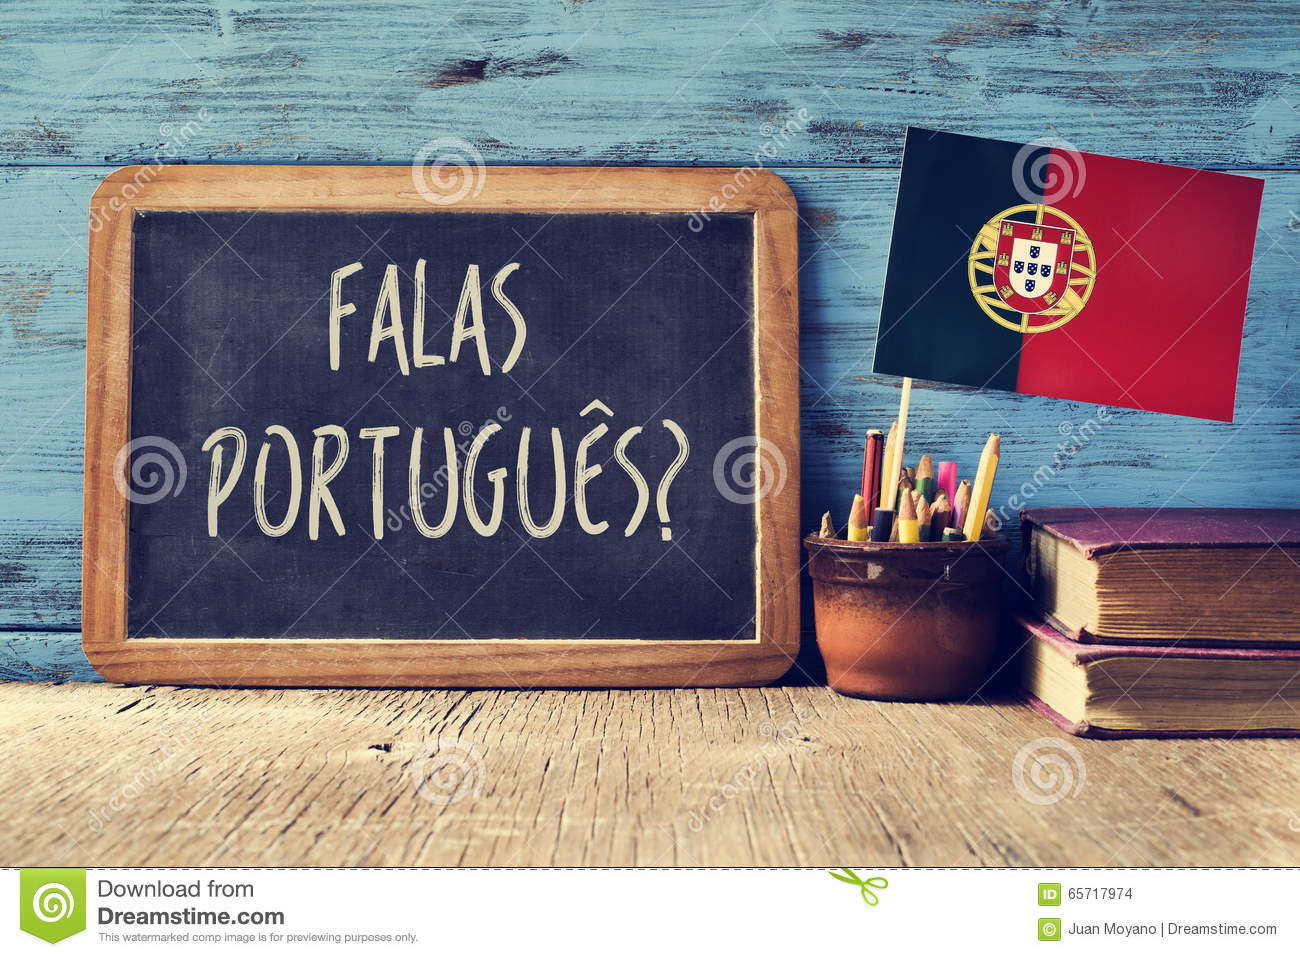 Bureau En Portugais : Portuges de falas de question ? parlez vous portugais ? photo stock